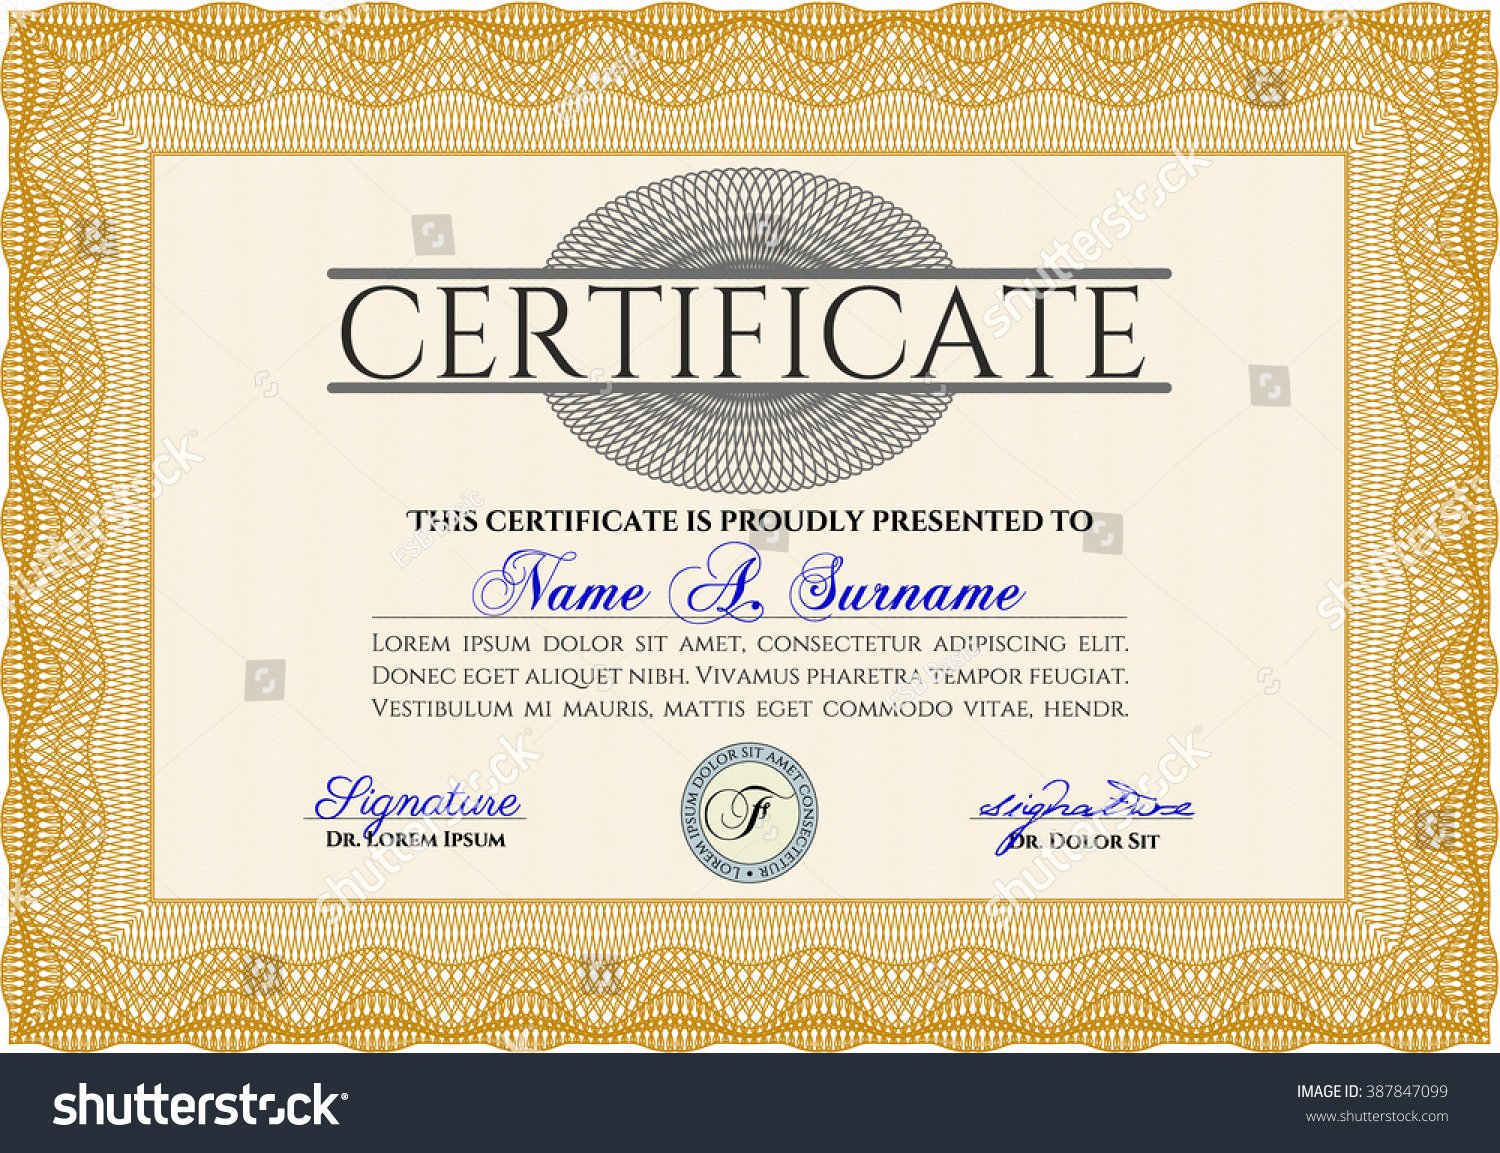 Certificate Of Quality Template Beautiful Diploma Template Certificate Template Quality Background